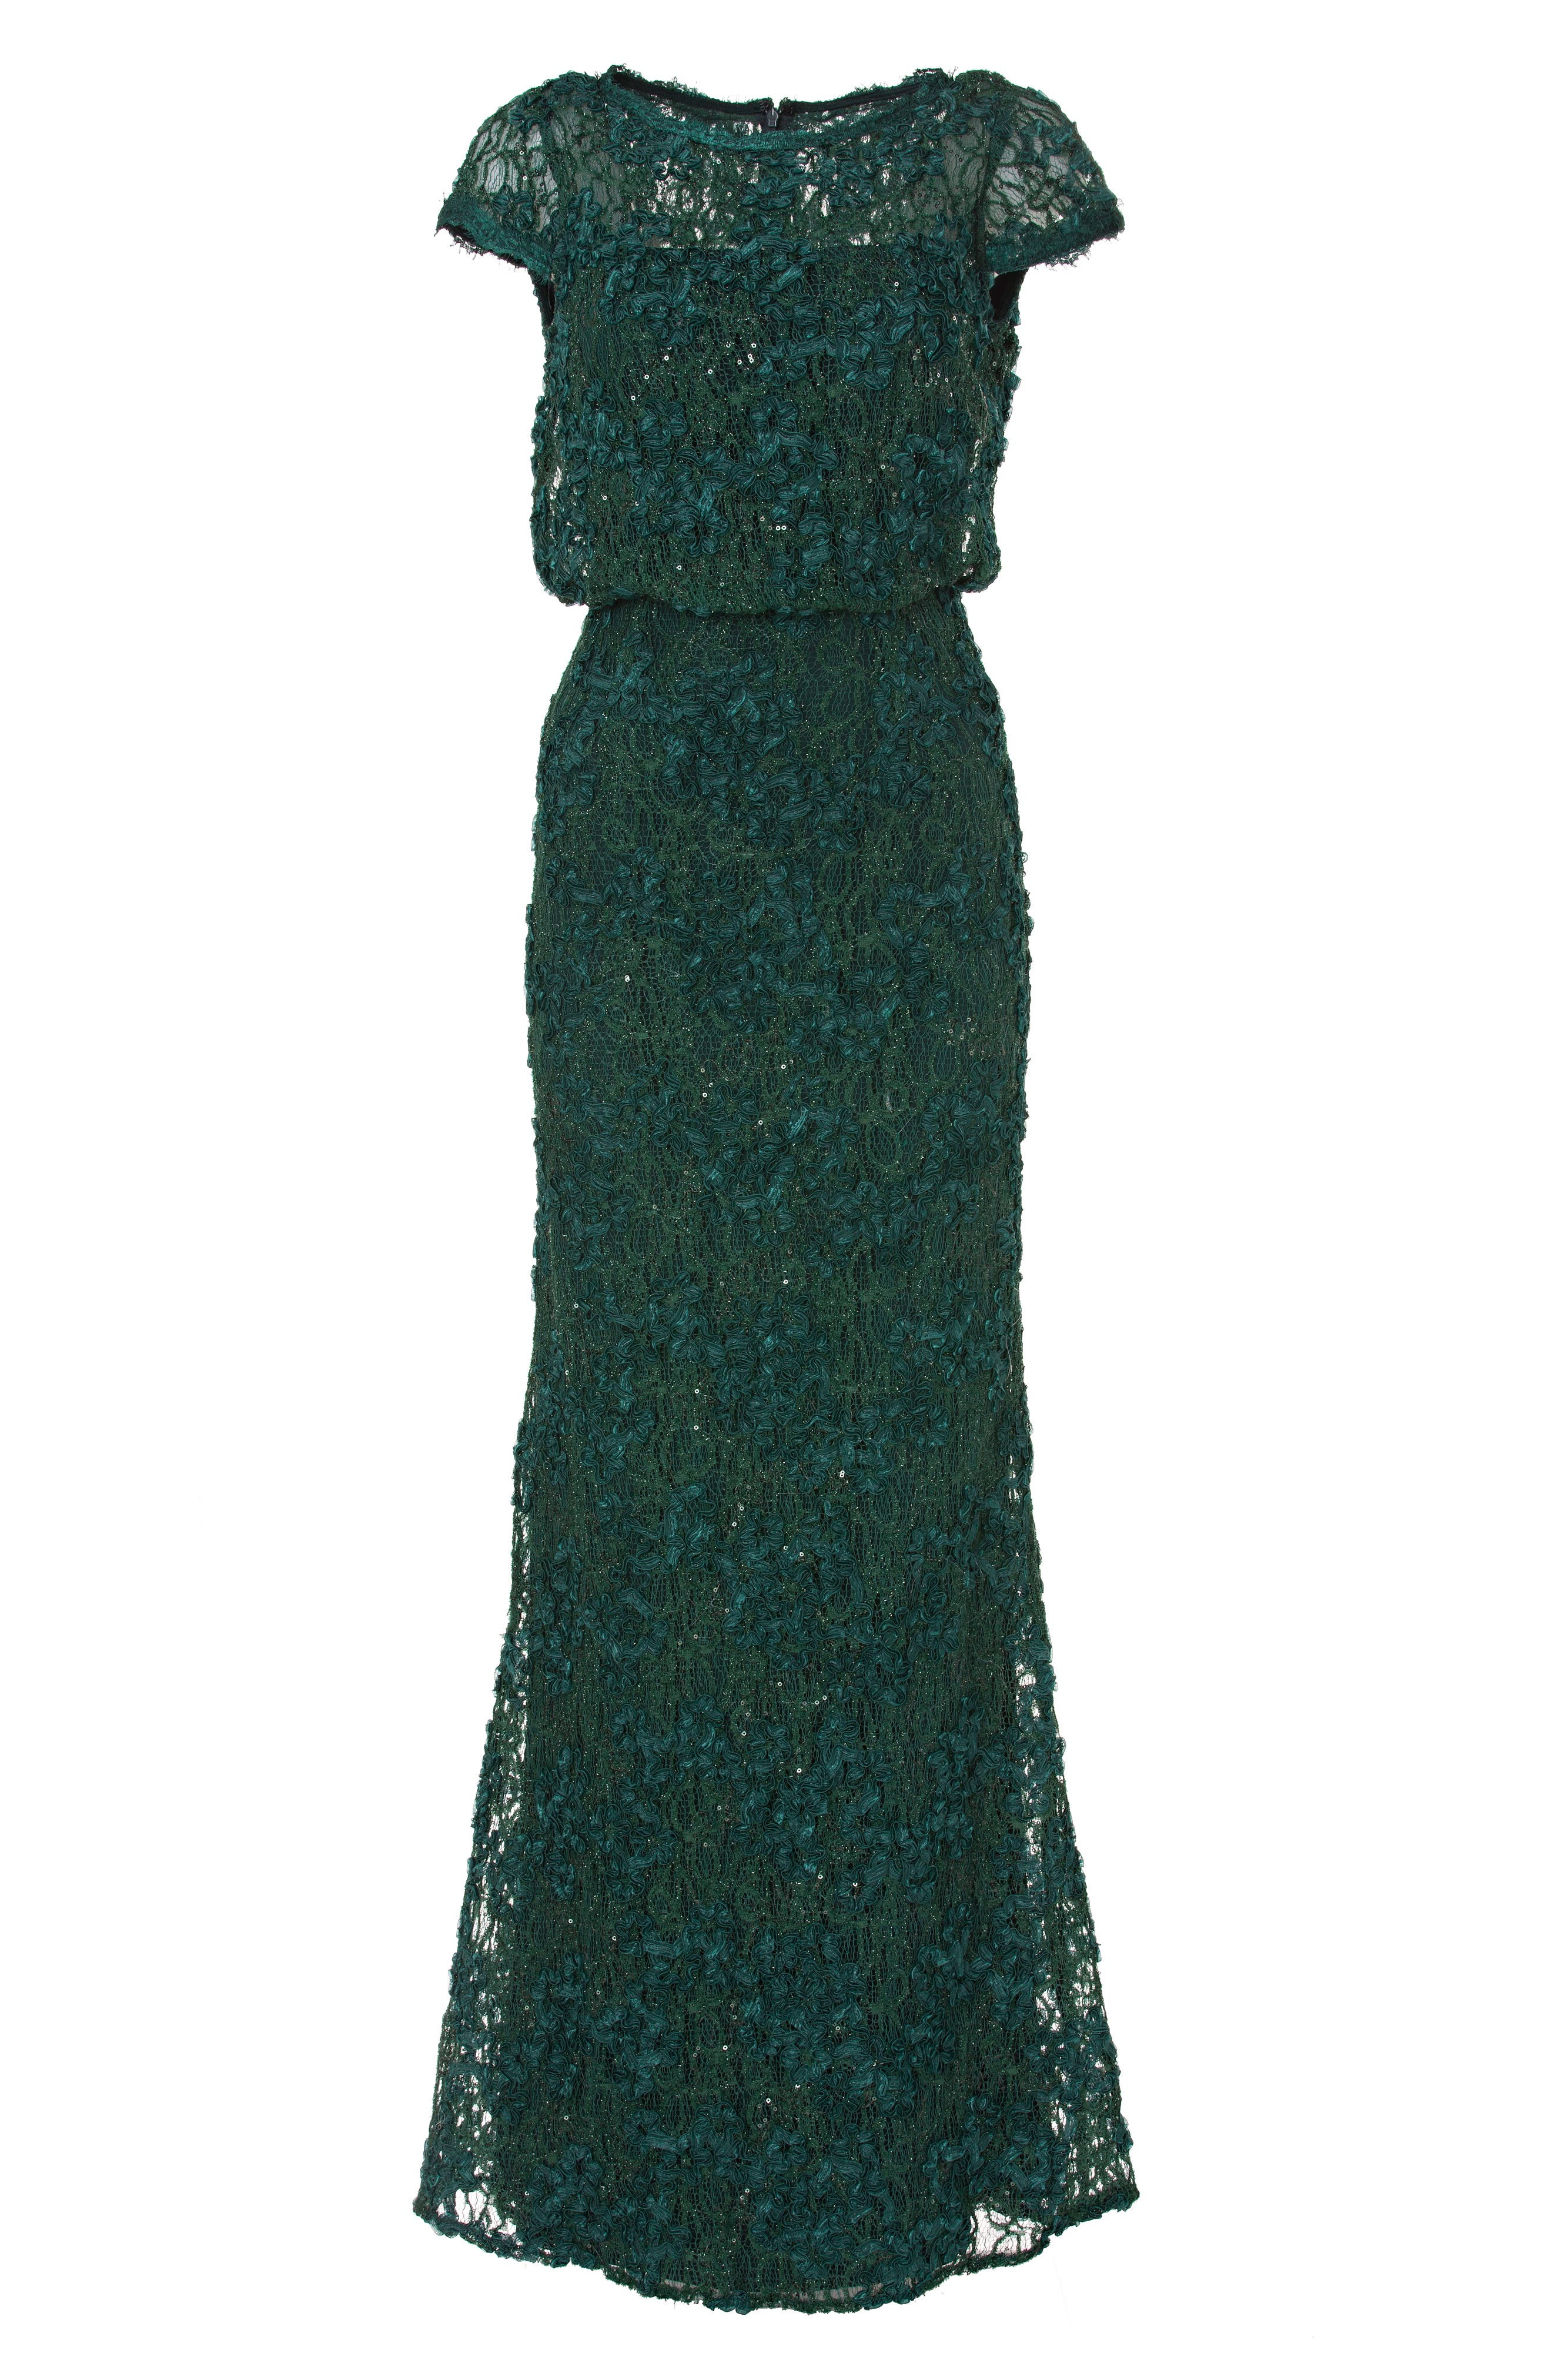 JS COLLECTIONS, Sequin Lace Blouson Gown, Alternate thumbnail 5, color, GREEN